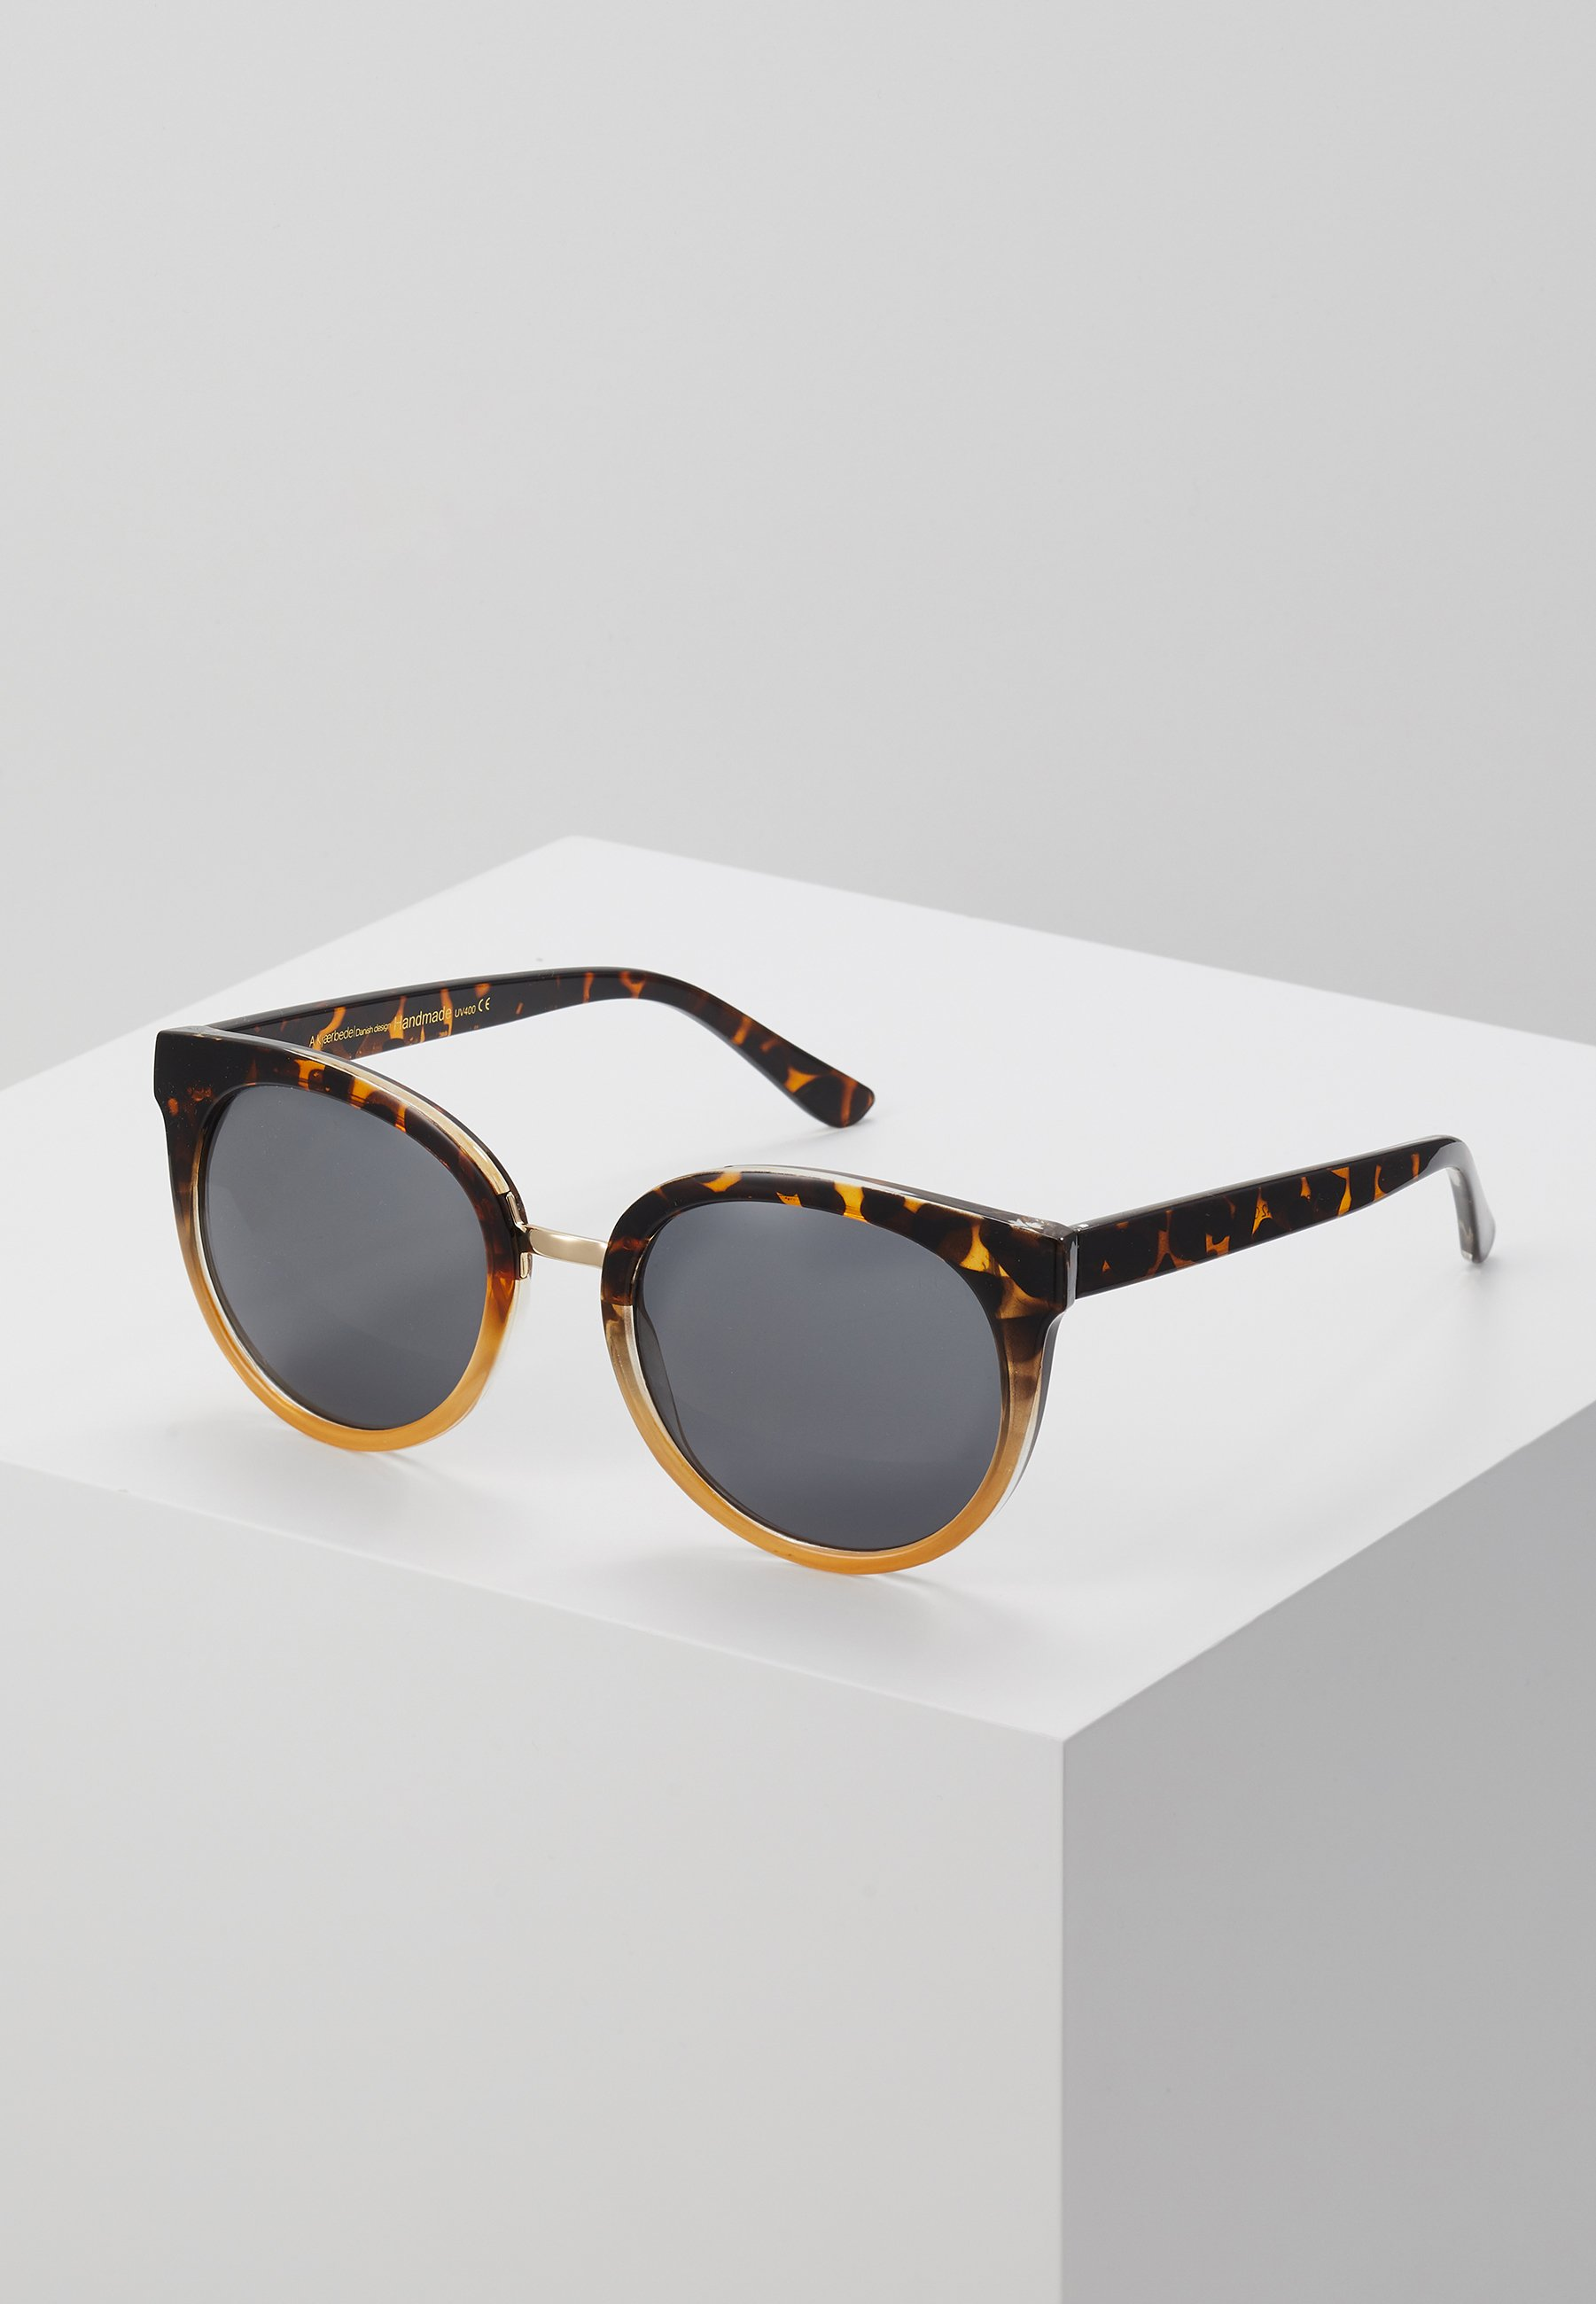 A.Kjærbede Sunglasses - tortoise/yellow